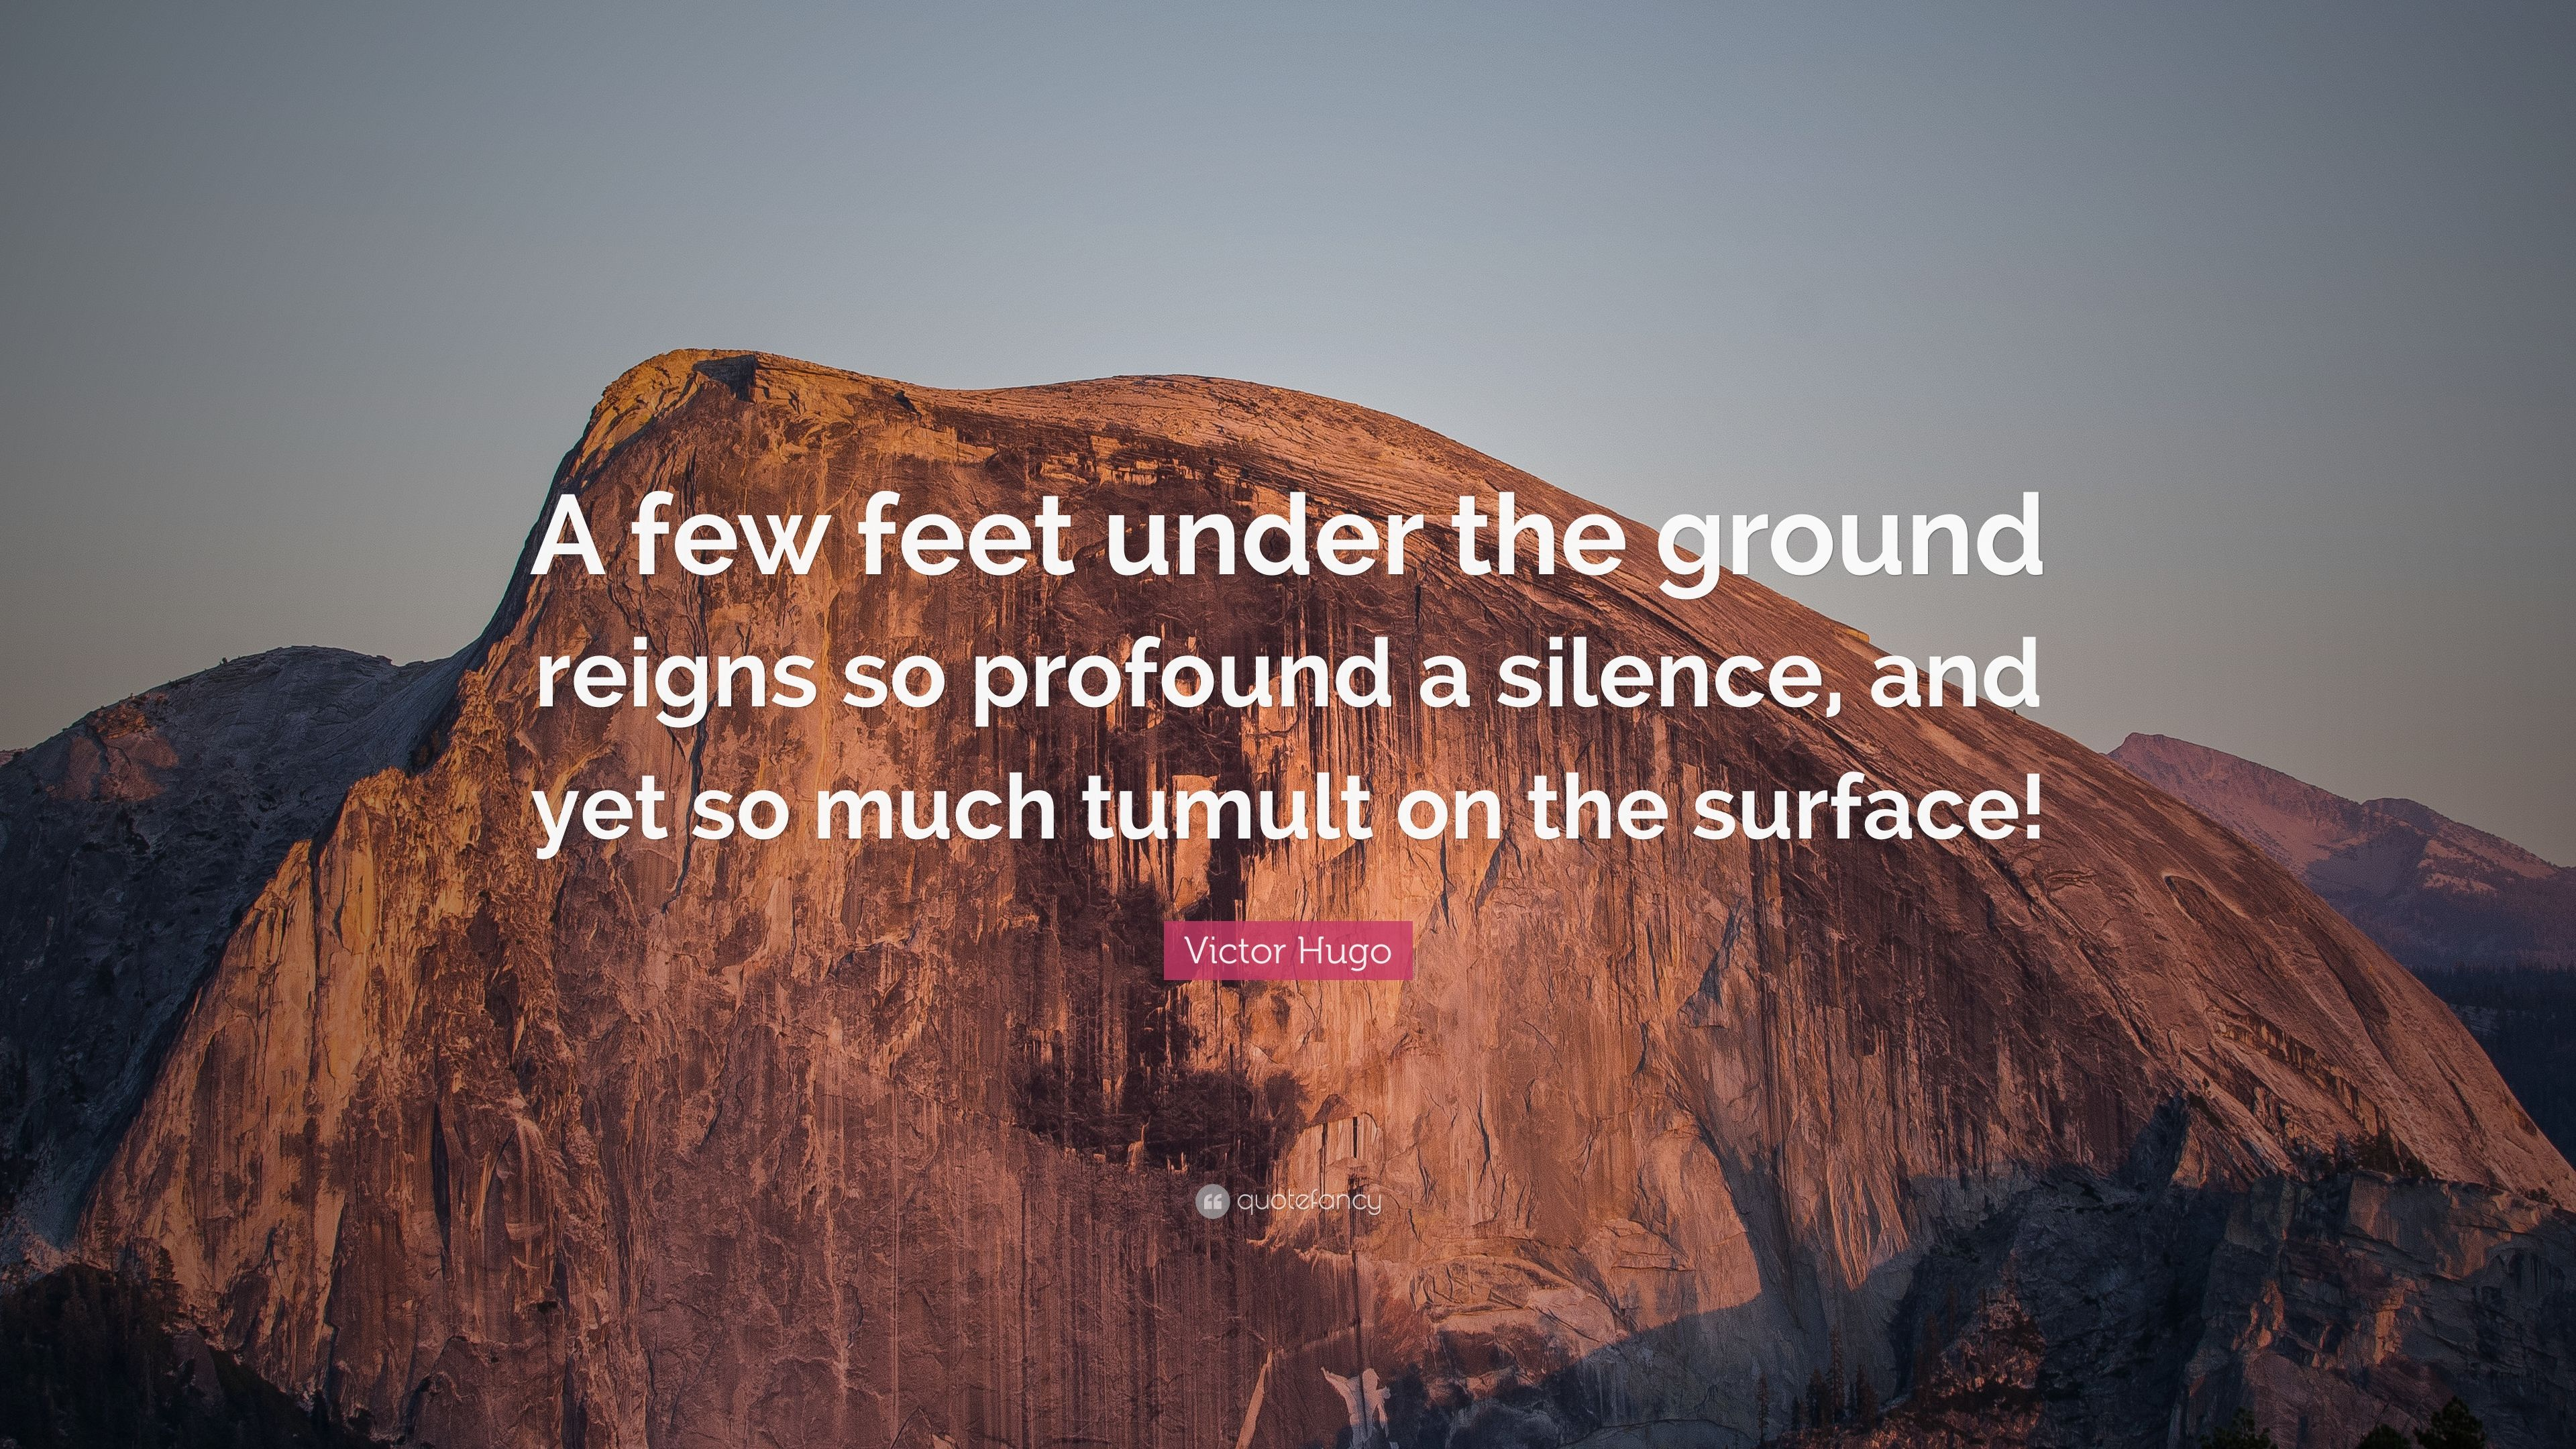 Victor Hugo Quote A Few Feet Under The Ground Reigns So Profound A Silence